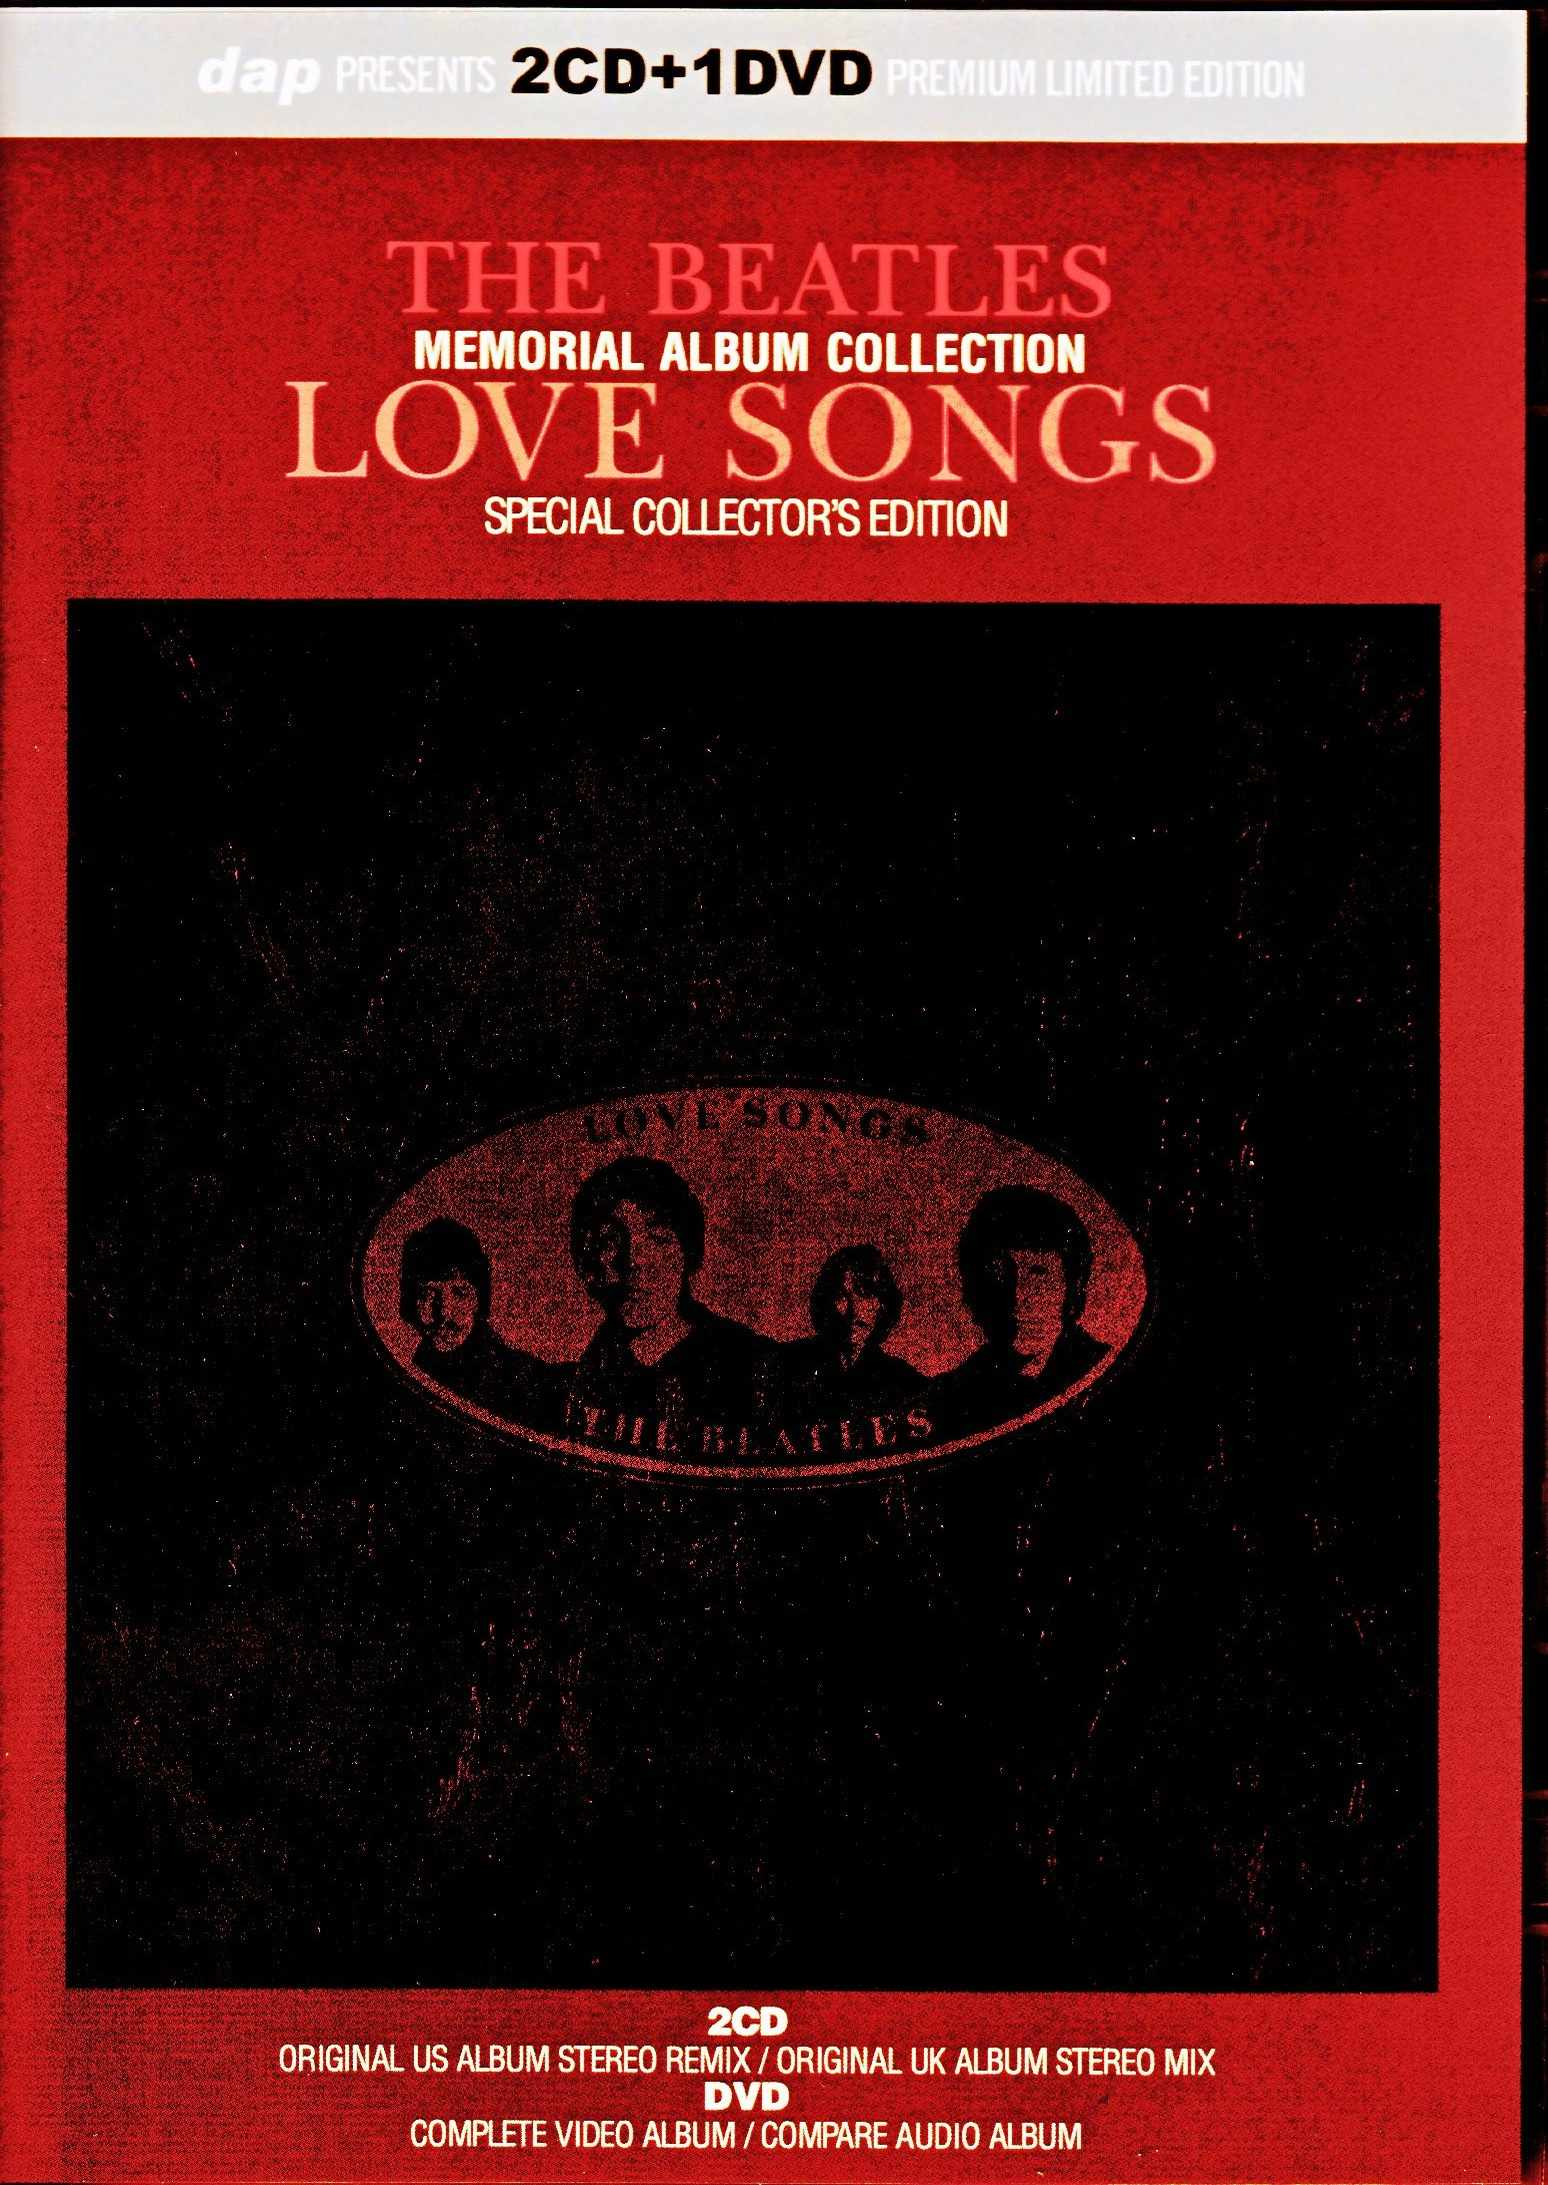 Beatles ビートルズ/ラブ・ソングス Love Songs Memorial Album Collection